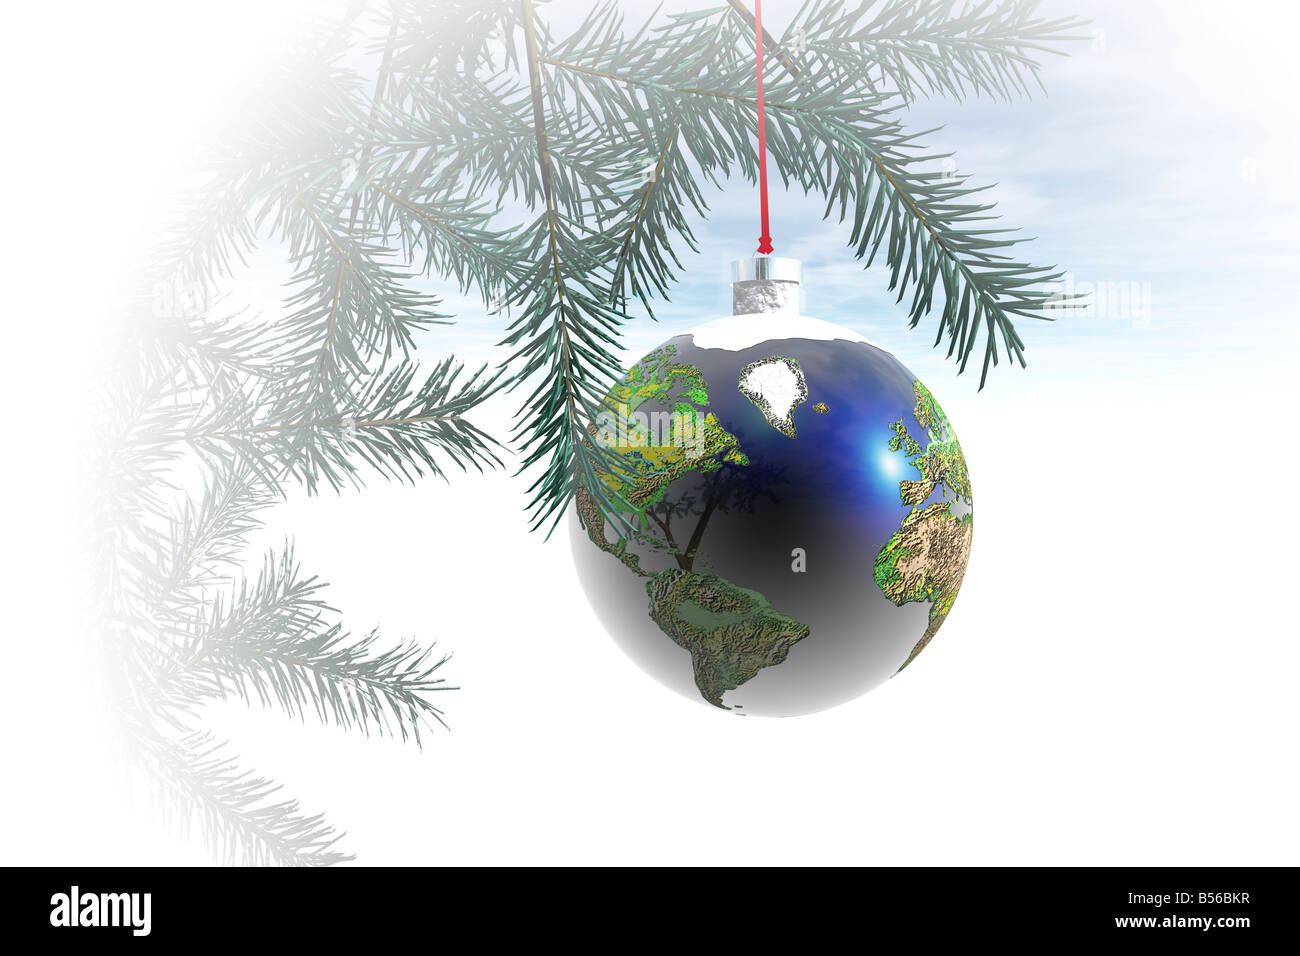 World globe christmas ornaments - Stock Photo World Globe Ornament Hanging From A Christmas Tree